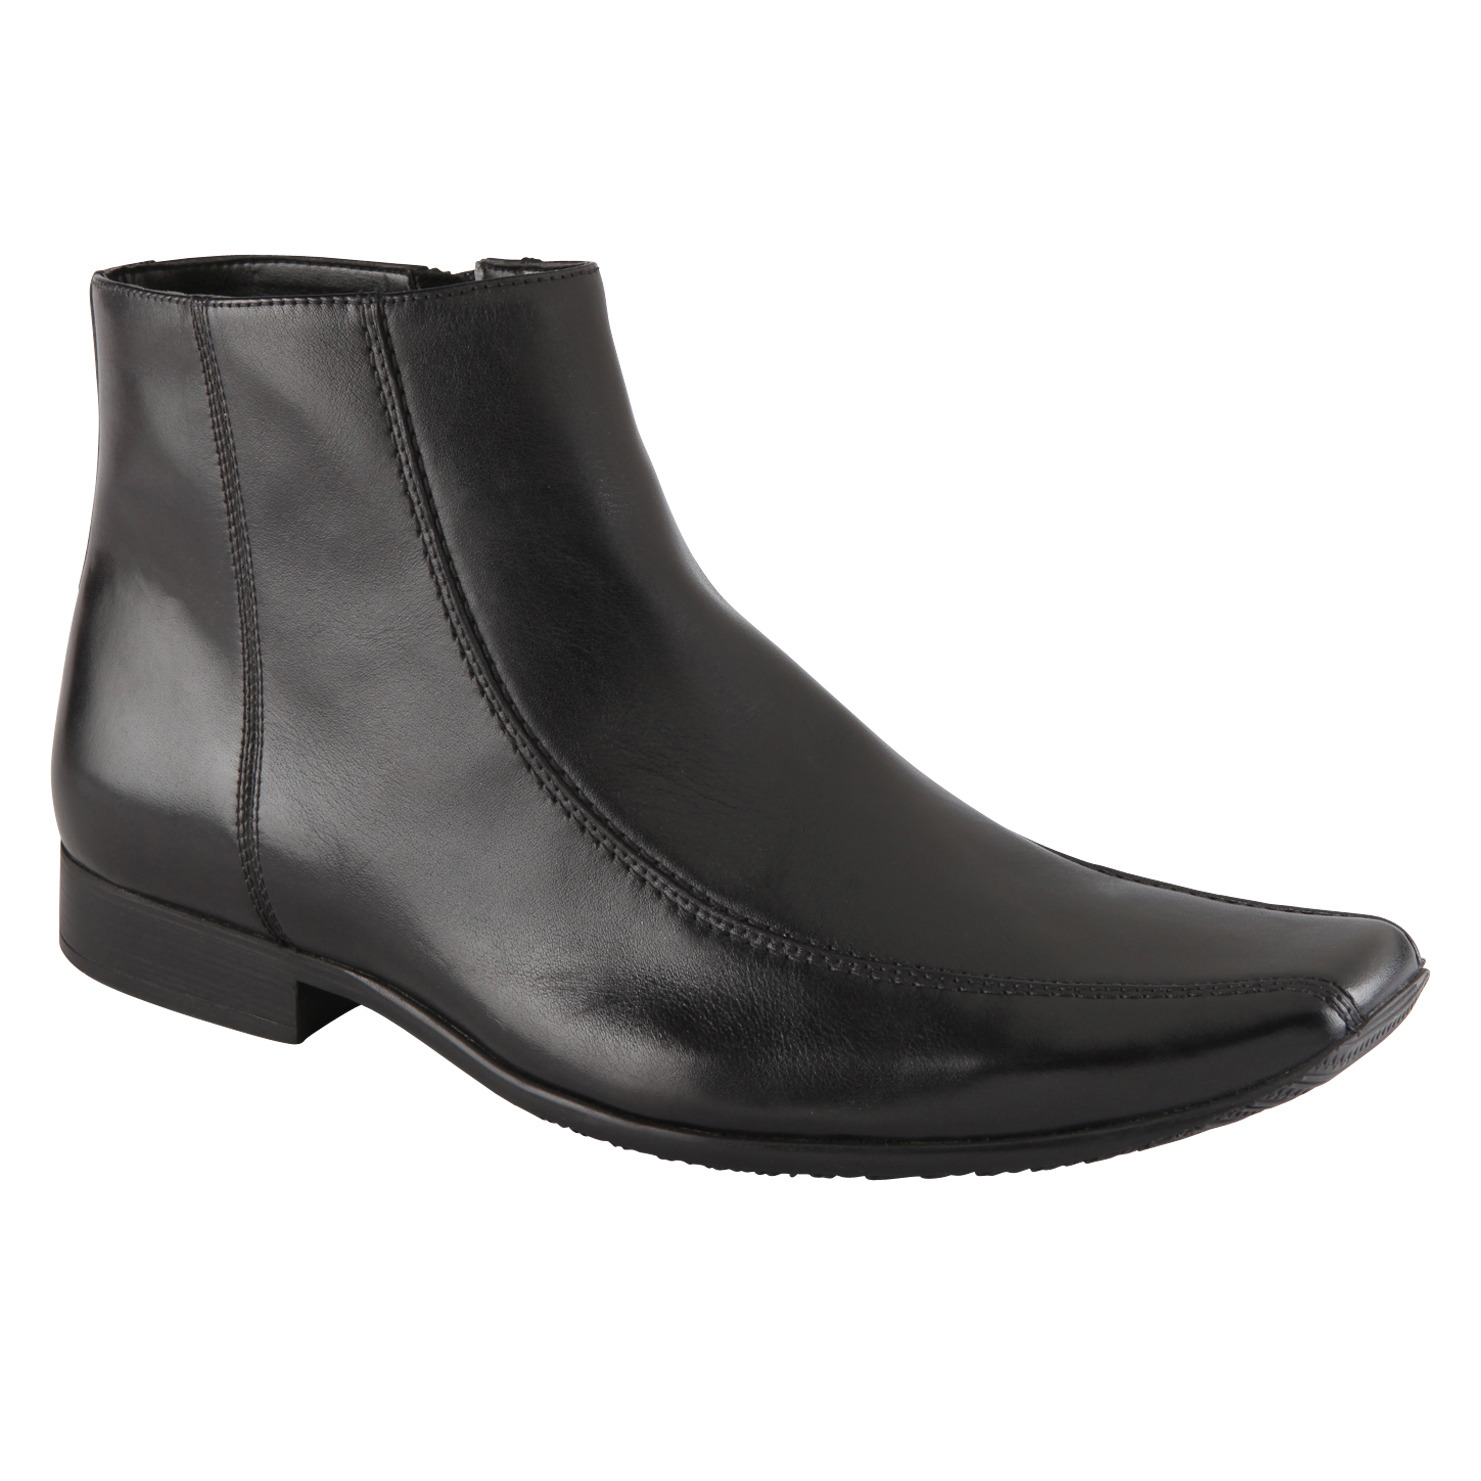 Mens Winter Dress Boots ocBGUF7c